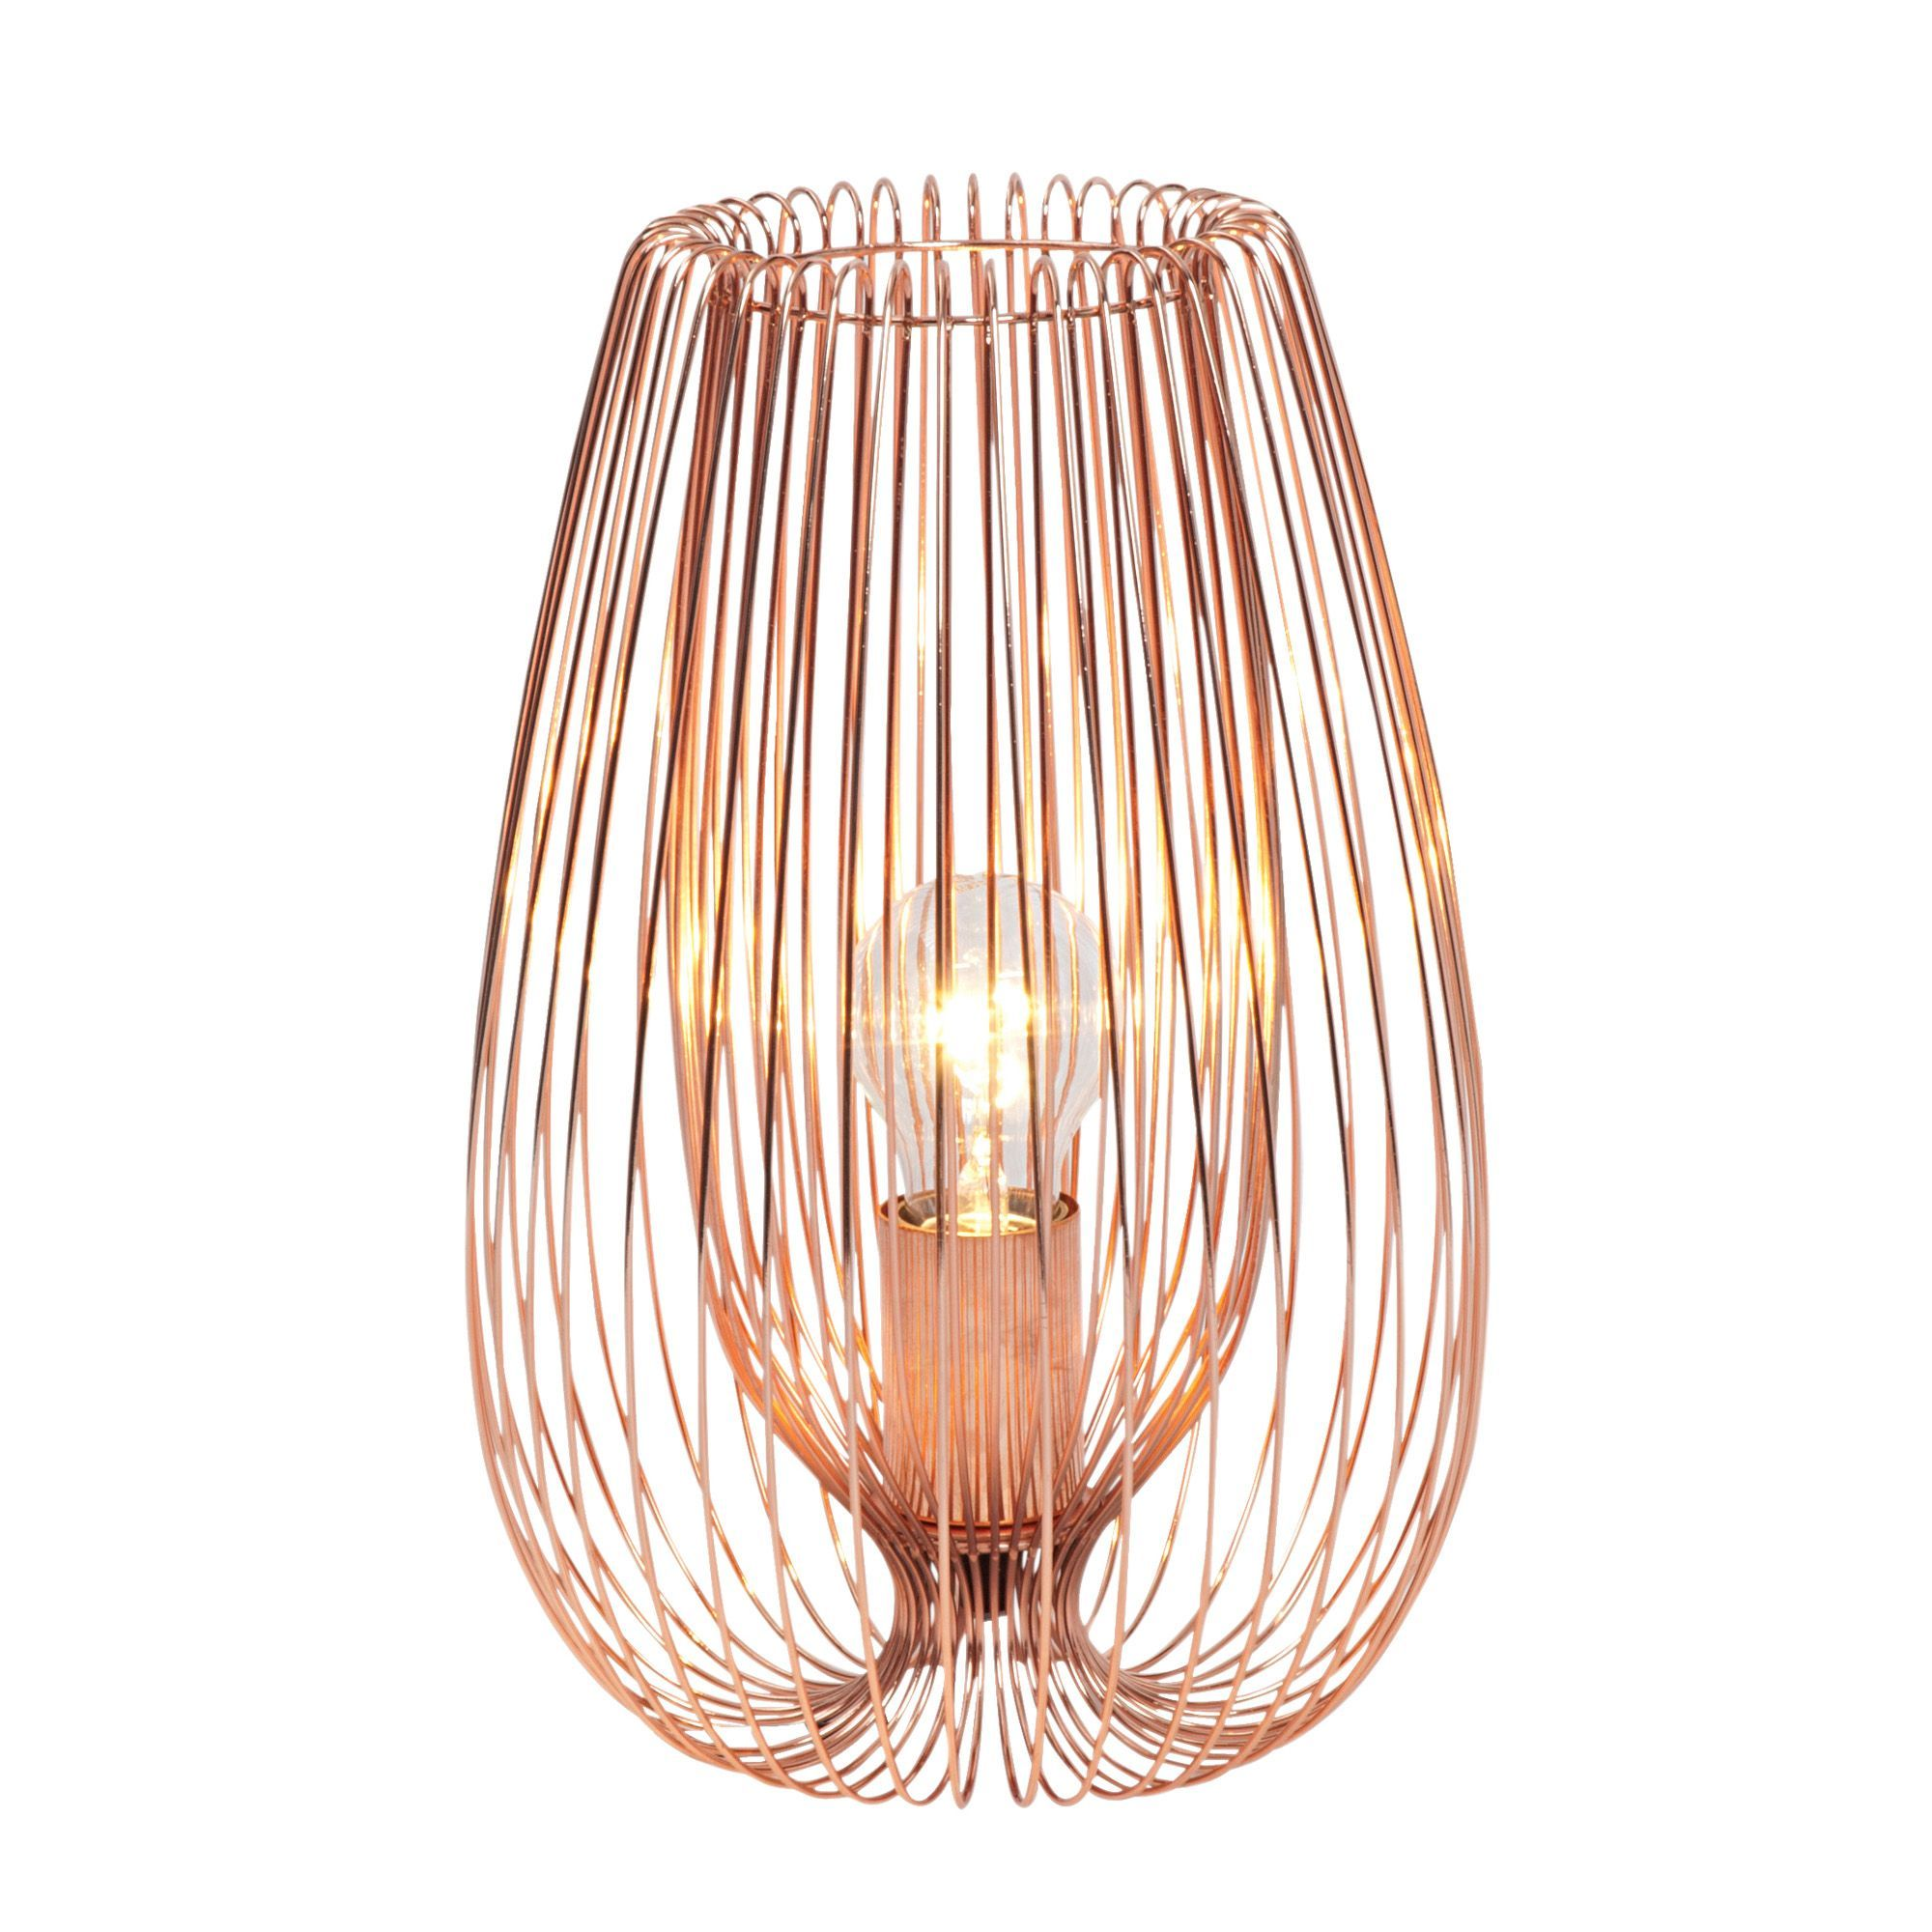 oplys lamp design pin from danish copper lamps pinterest mcm